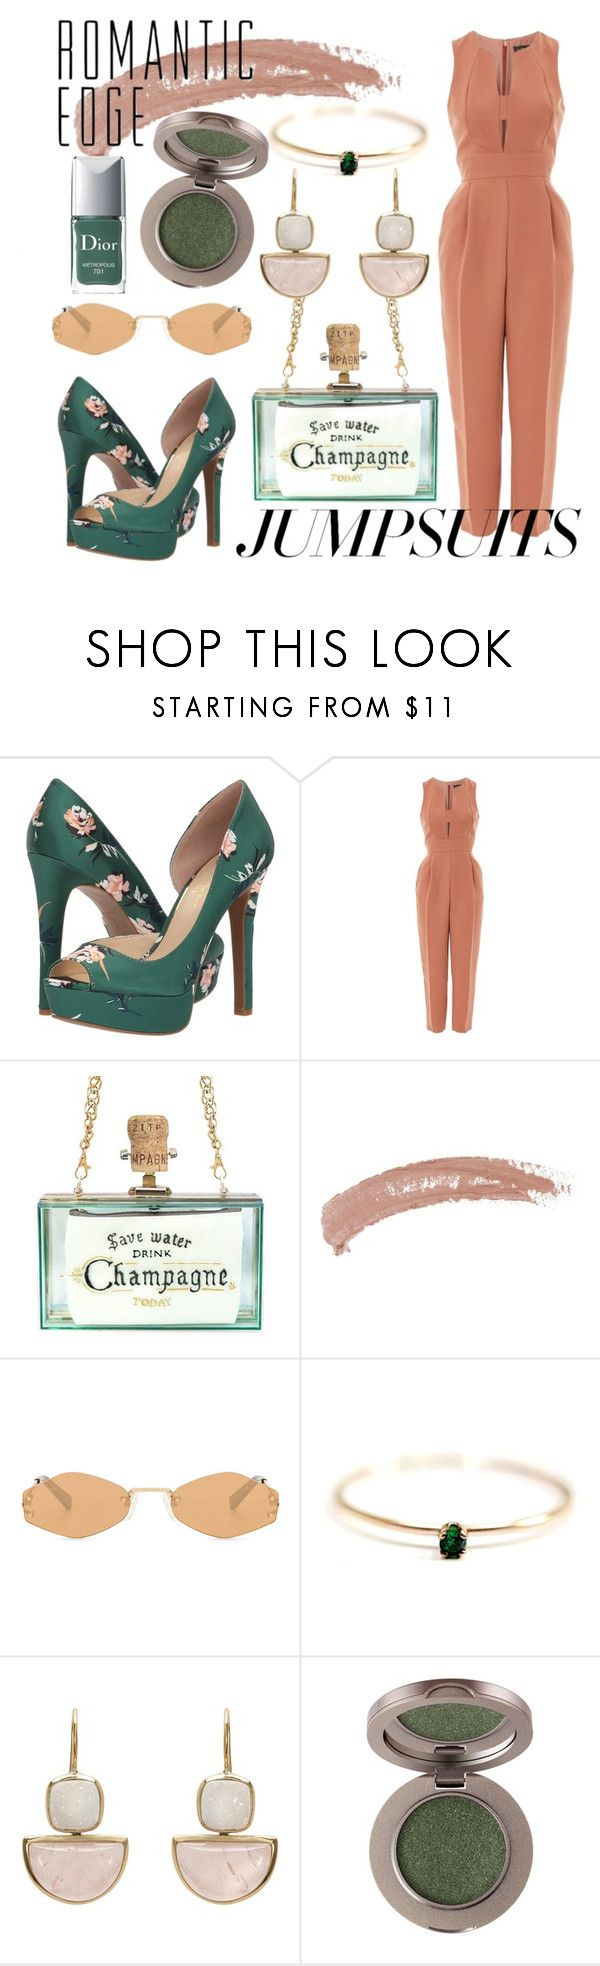 """""""beige & green"""" by lindzeyers ❤ liked on Polyvore featuring Jessica Simpson, Topshop, Kendall + Kylie, John Lewis, Christian Dior and jumpsuits"""